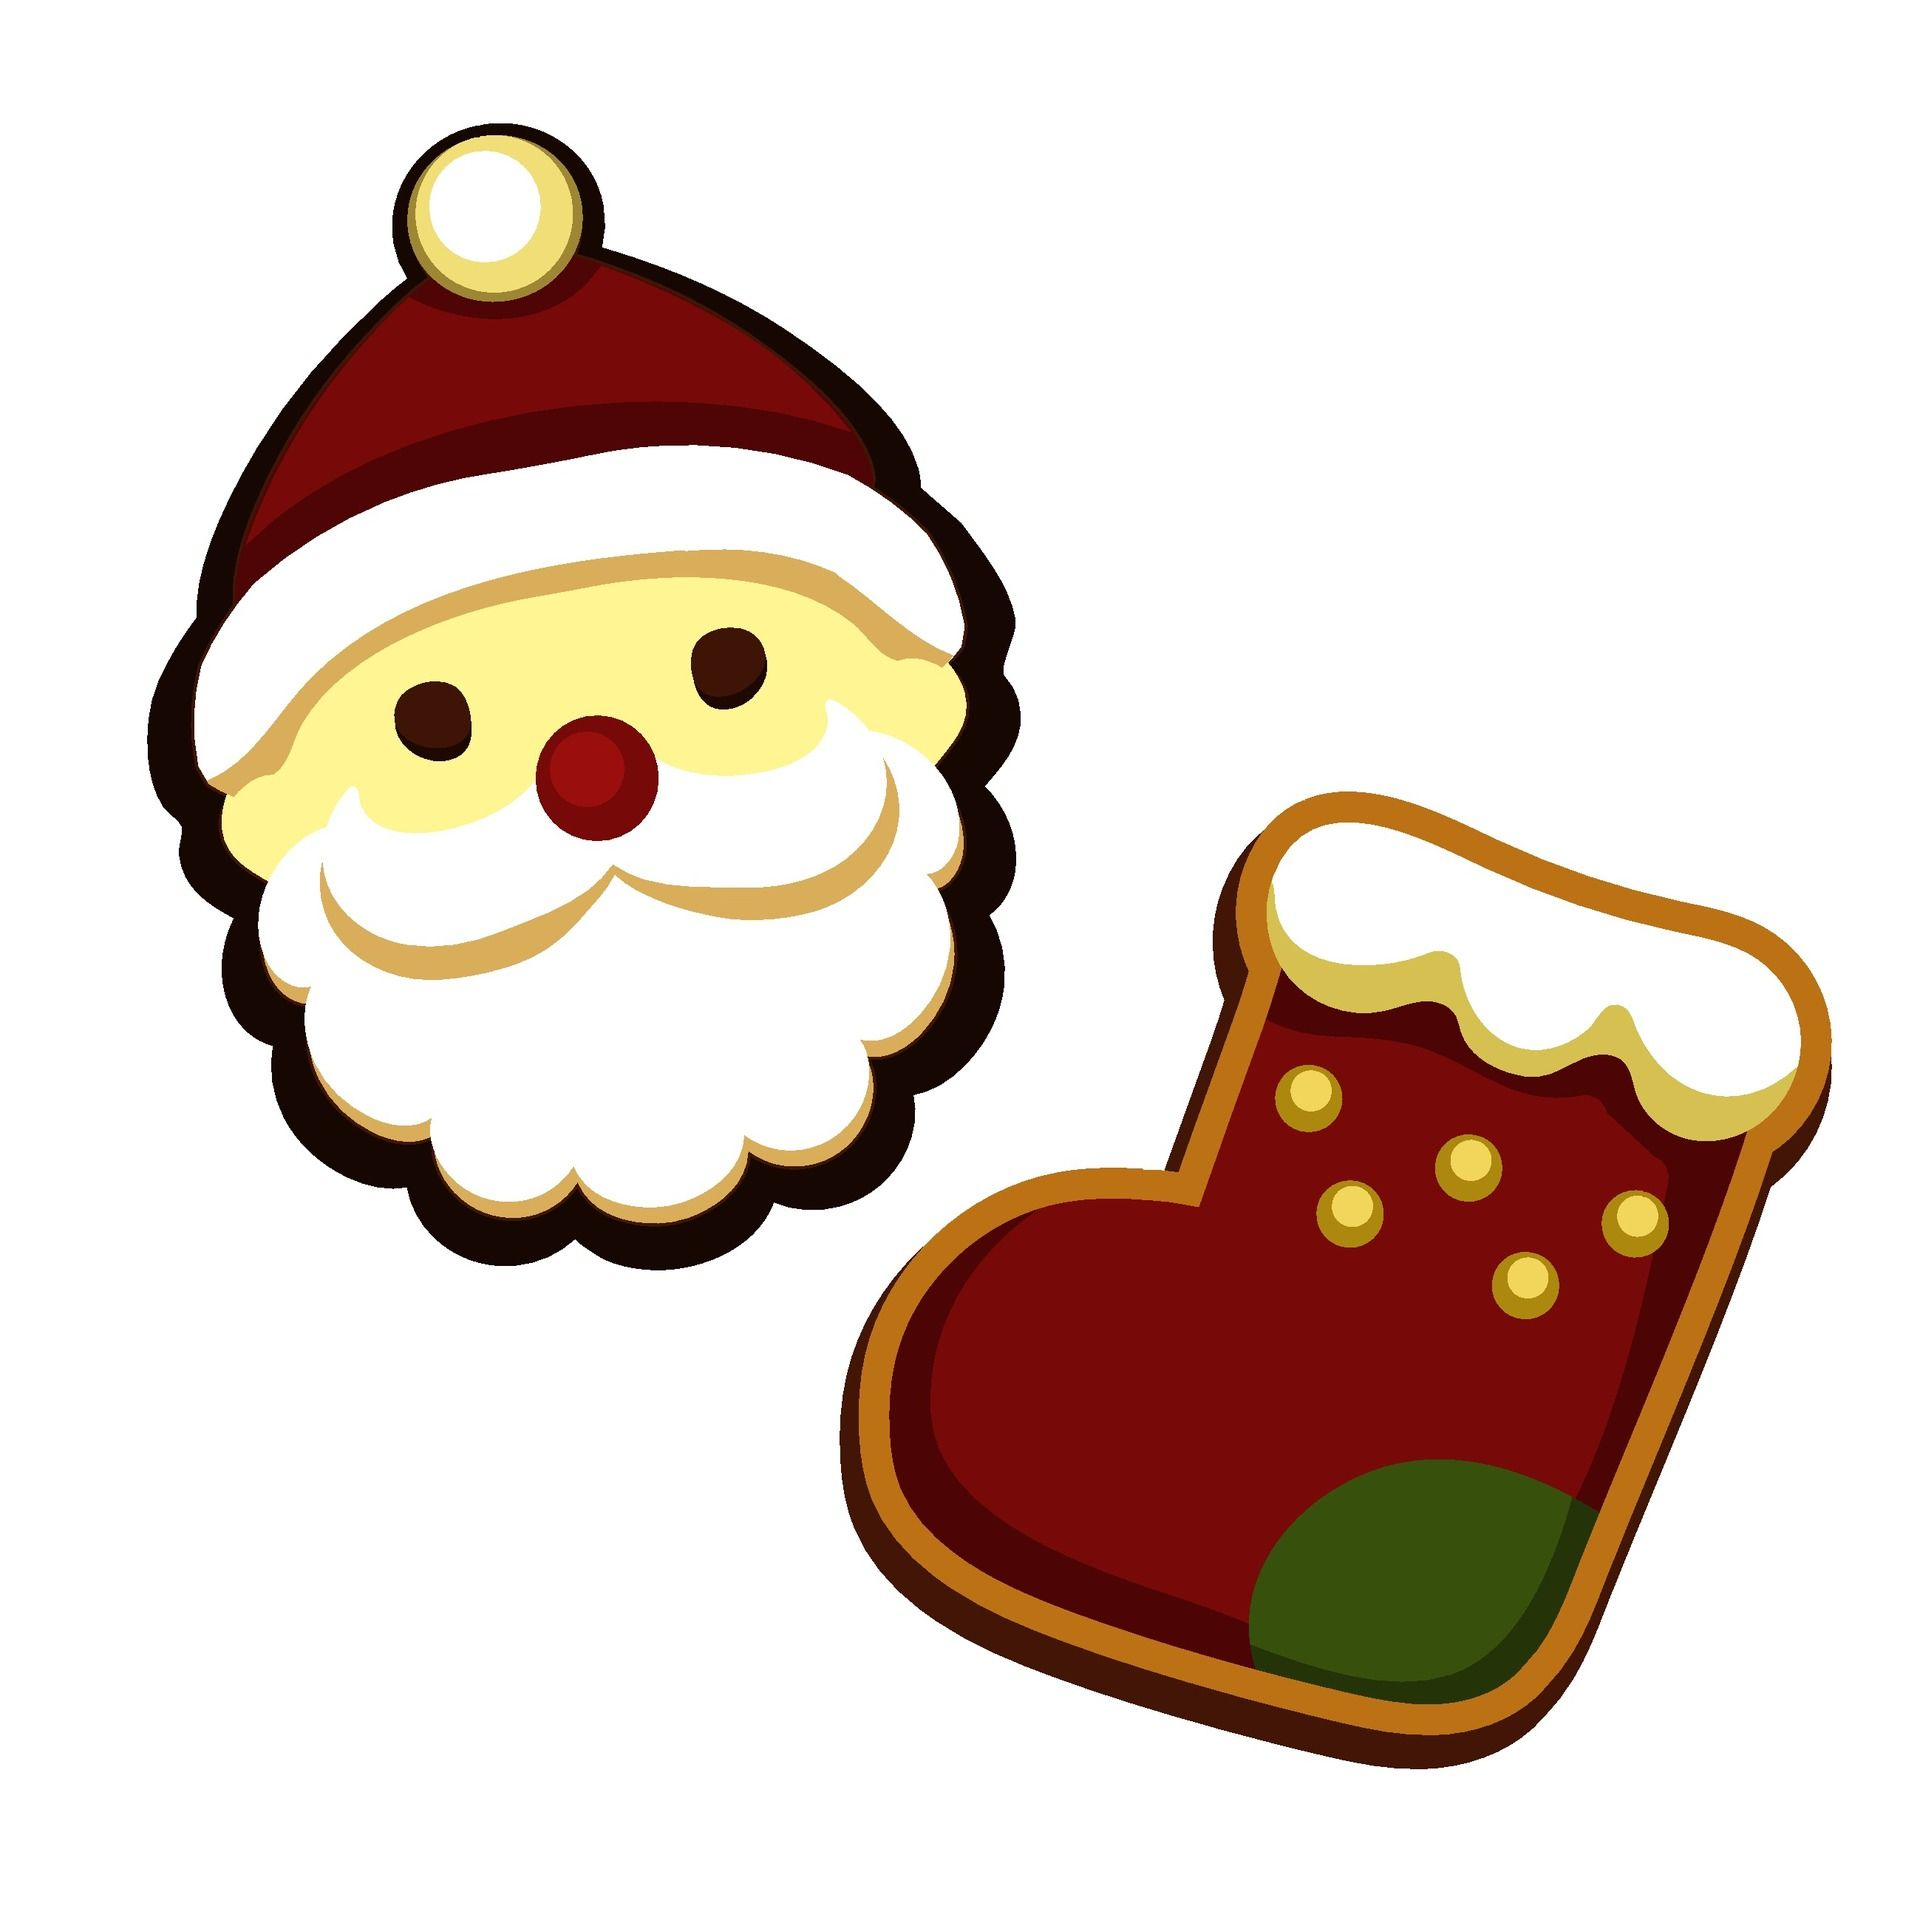 Santa and cookies clipart clipart images gallery for free.